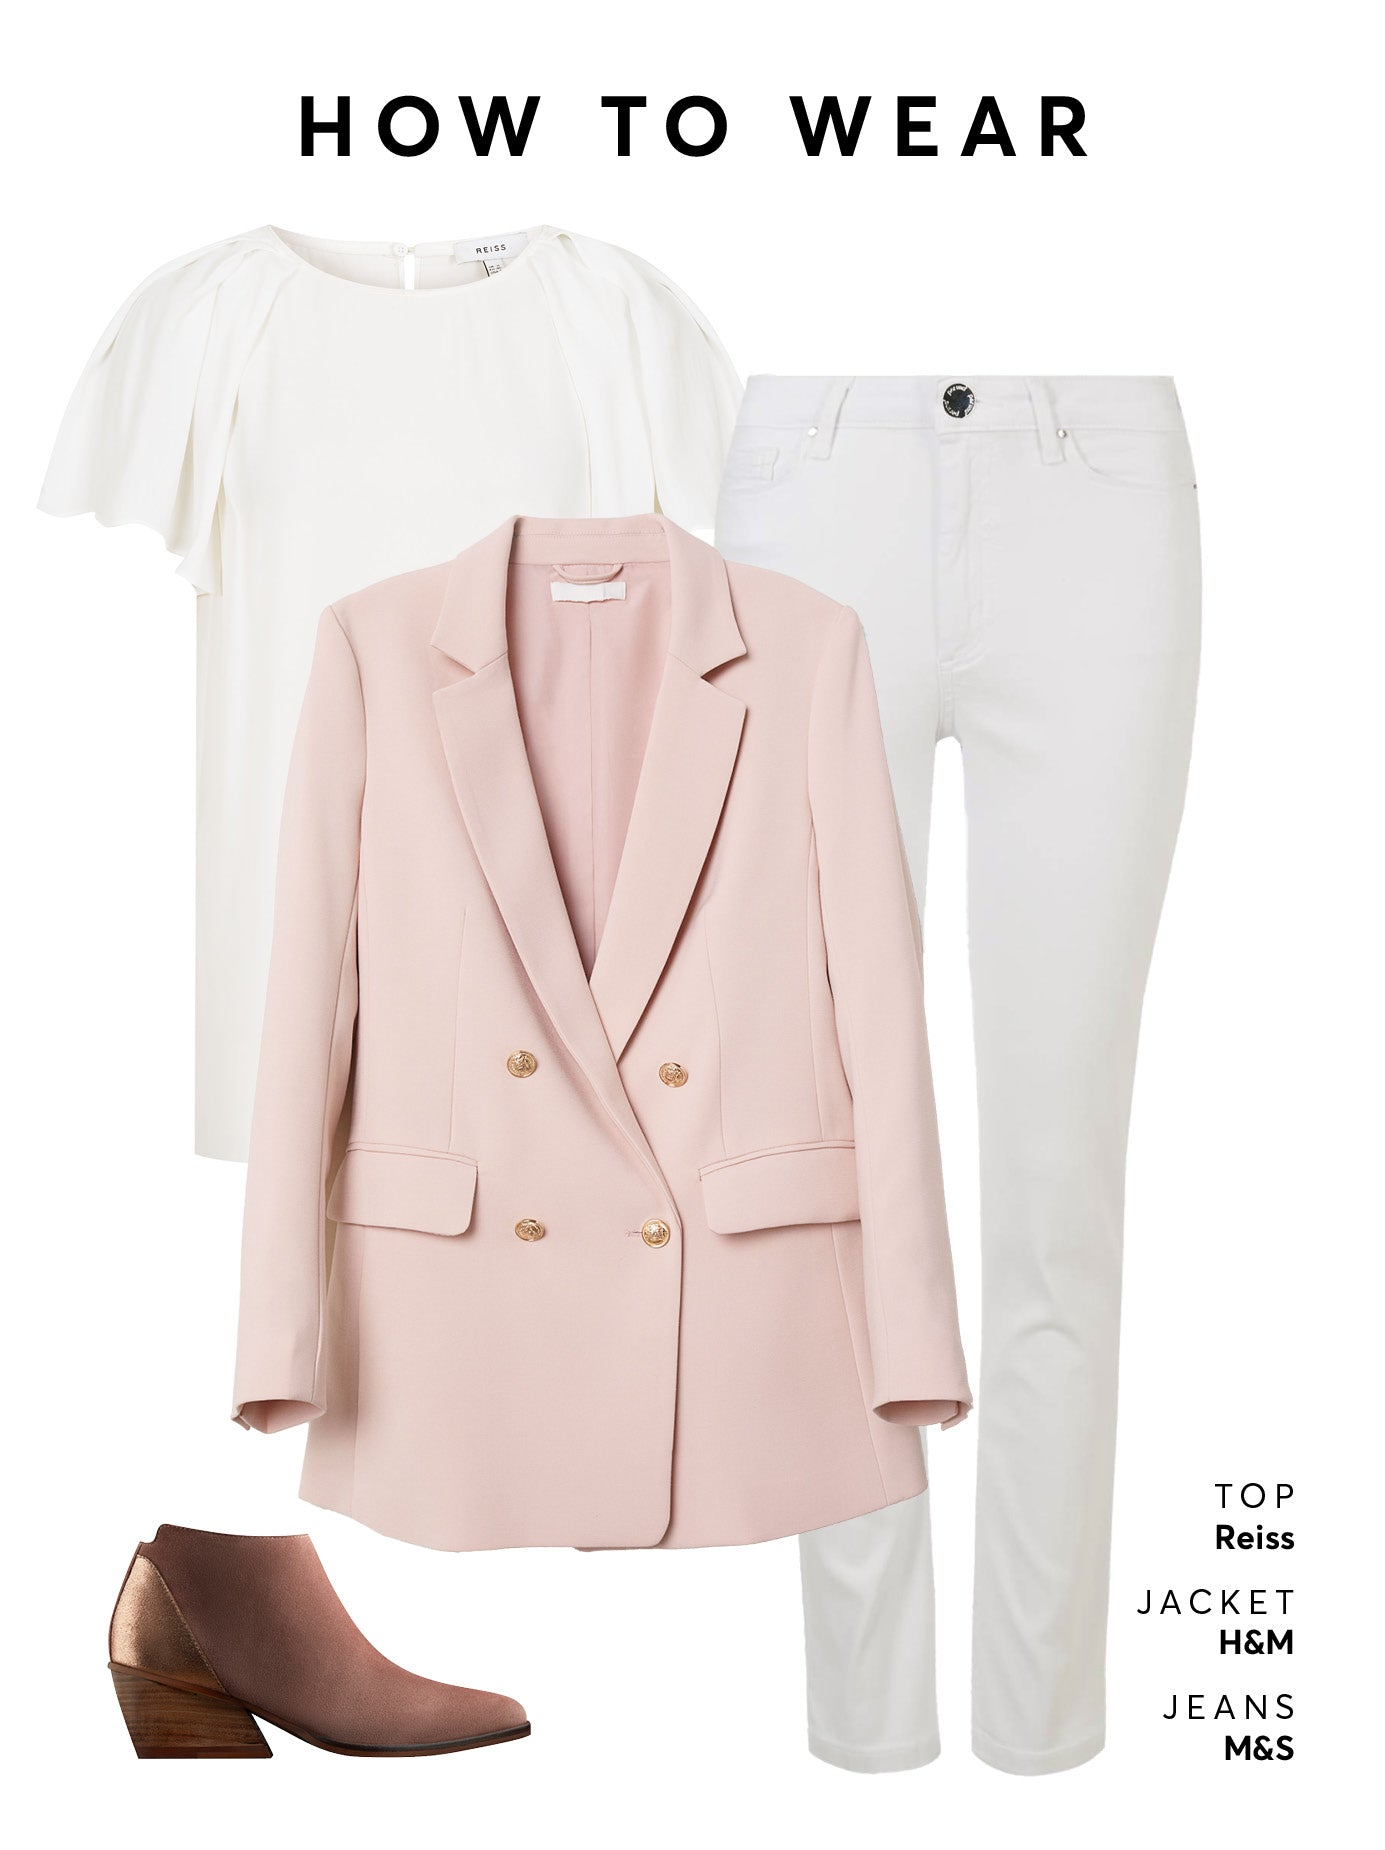 Wear with jeans of your choice, a plain t-shirt and an oversized blazer.